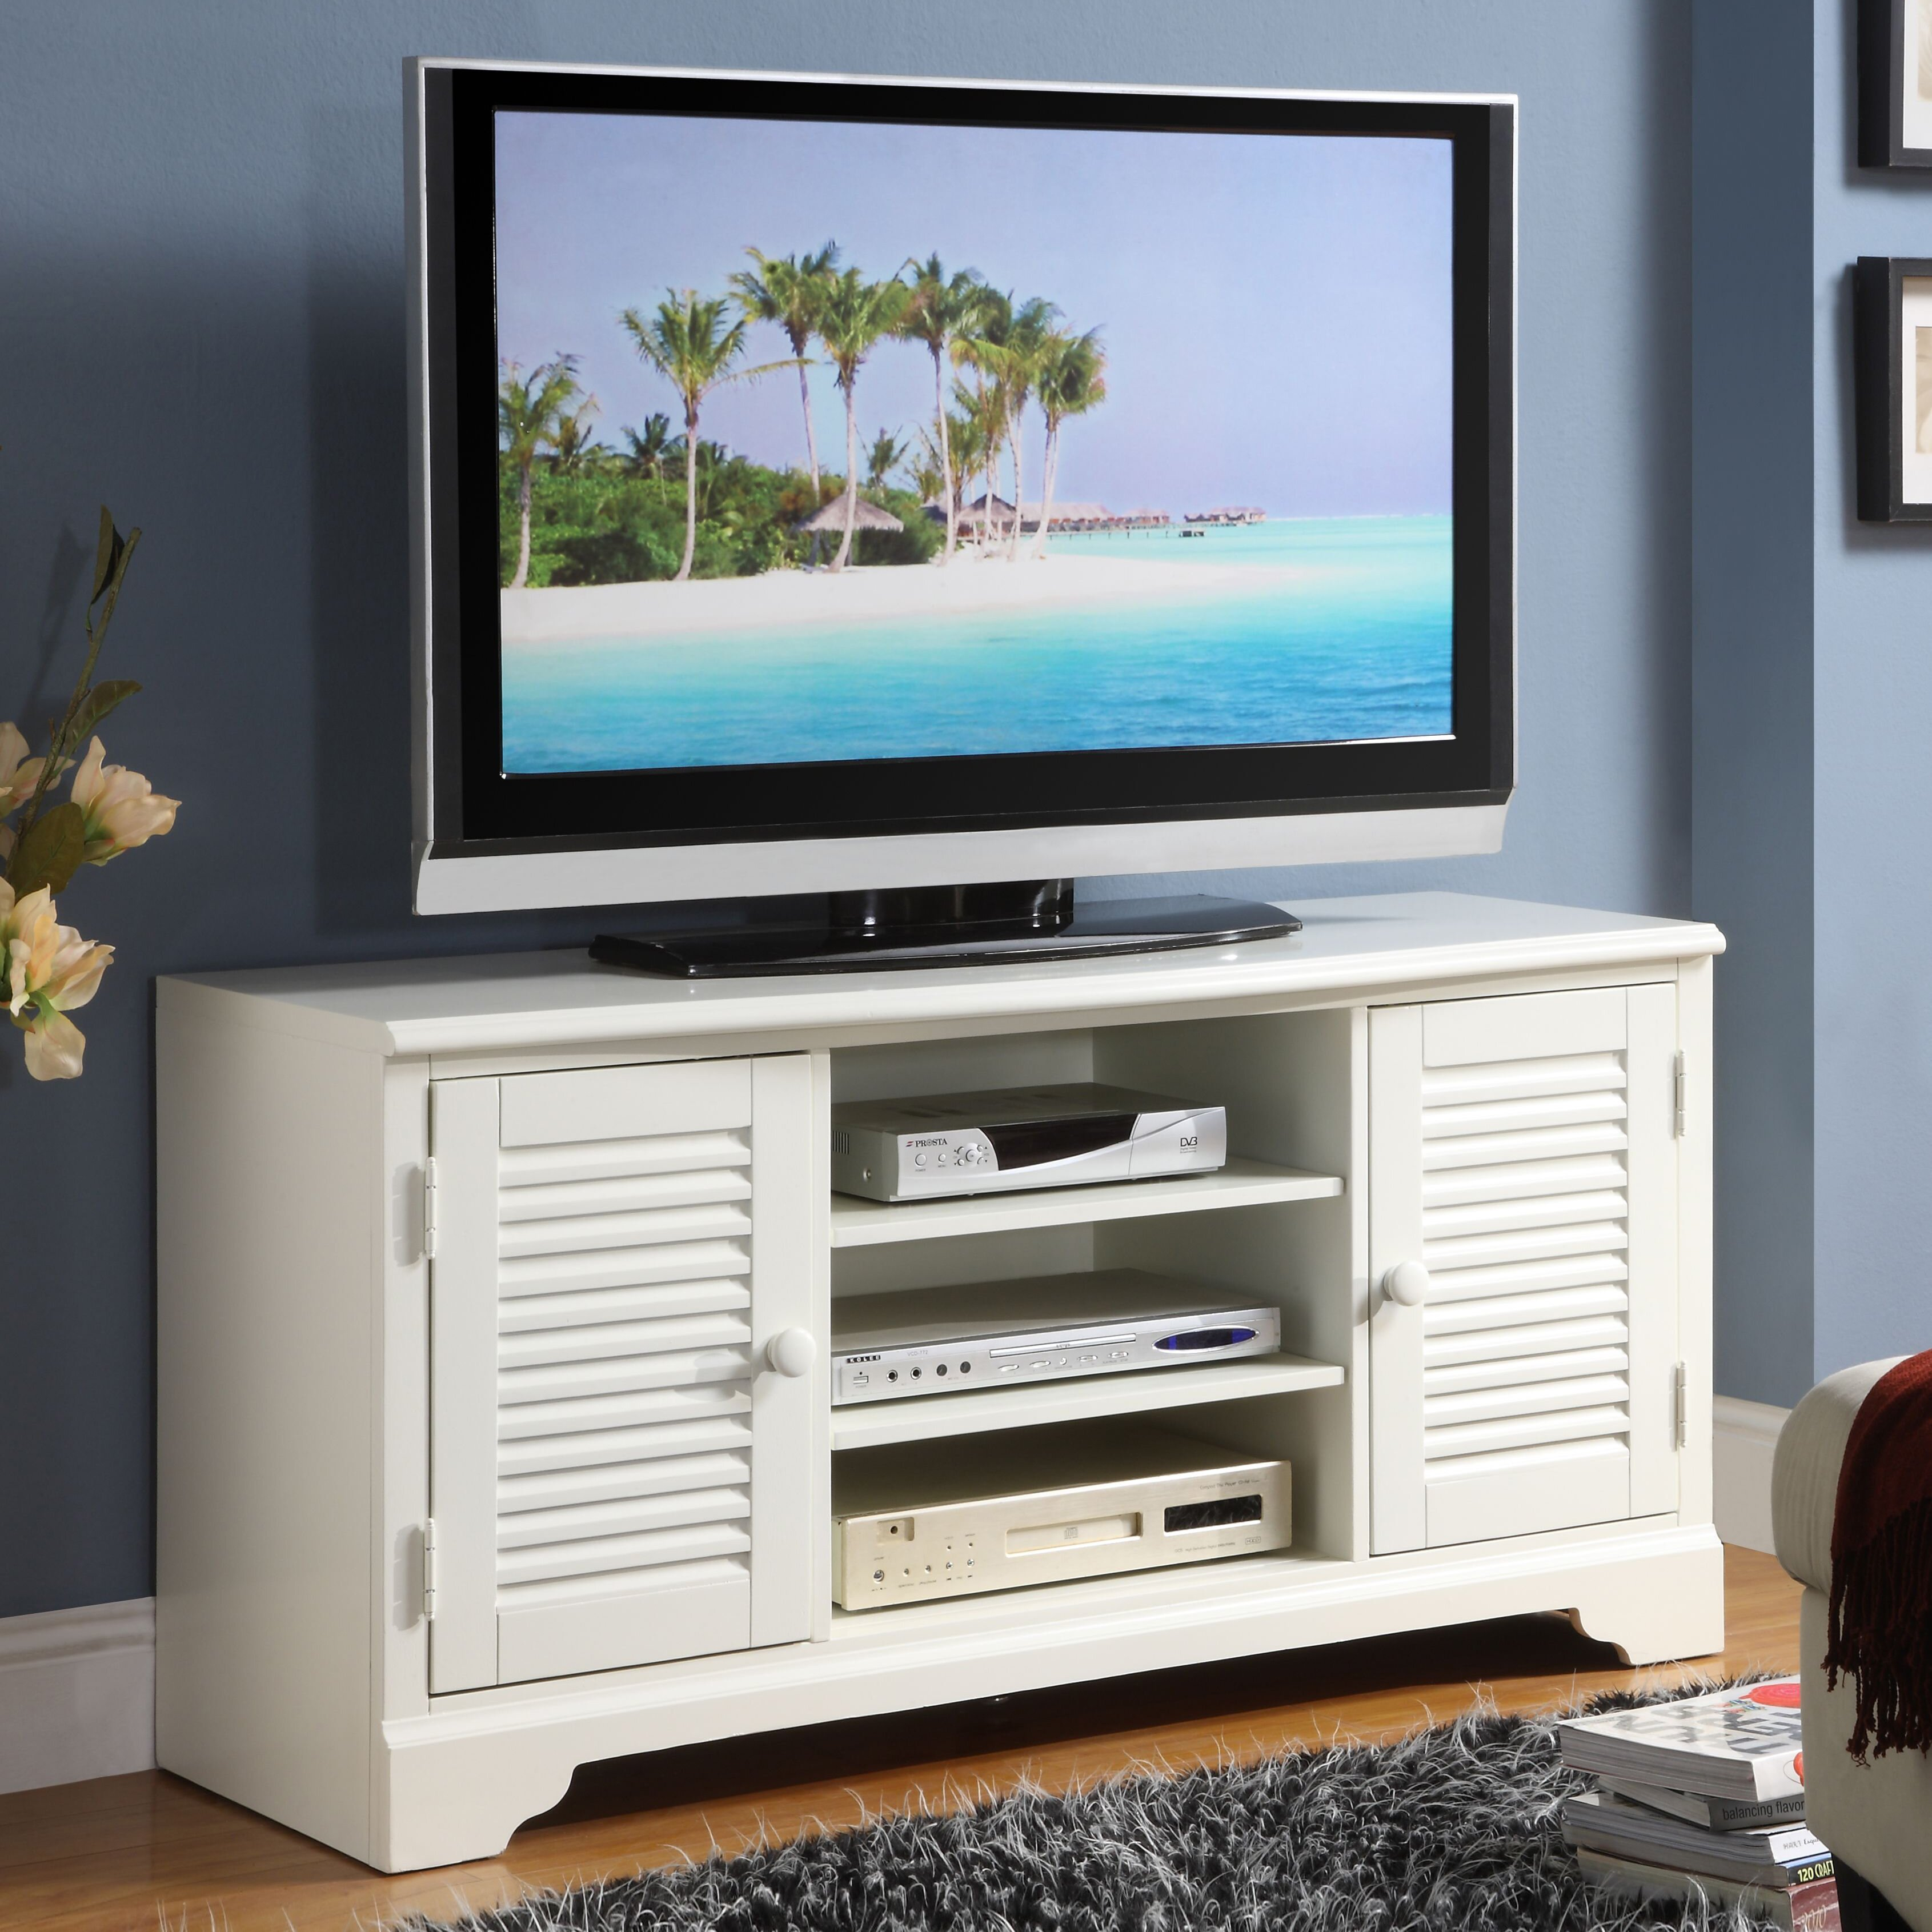 Riverside Furniture Essex Point Wall TV Stand & Reviews